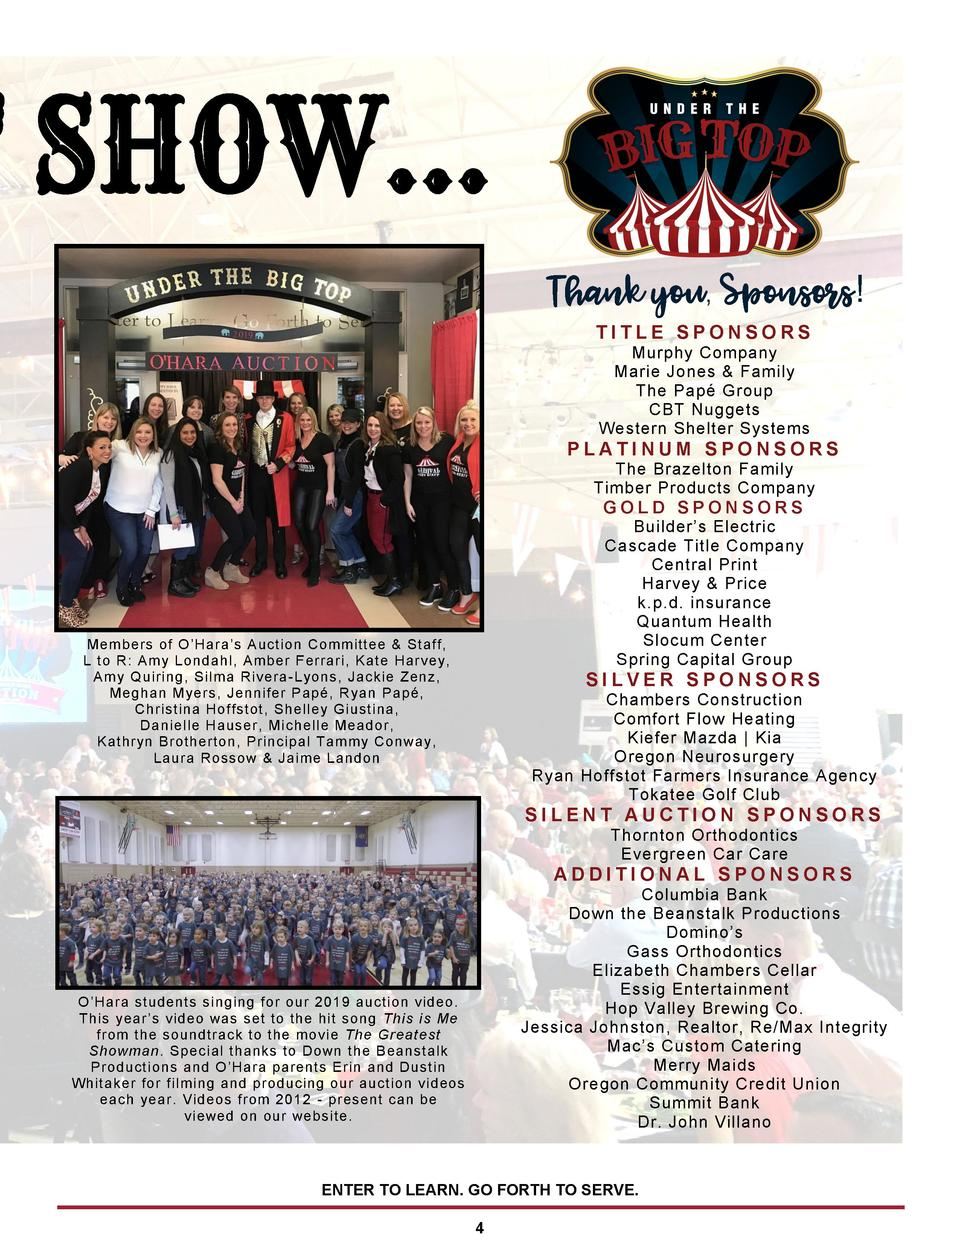 Thank you, Sponsors  TITLE SPONSORS Murphy Company Marie Jones   Family The Pap   Group CBT Nuggets Western Shelter System...